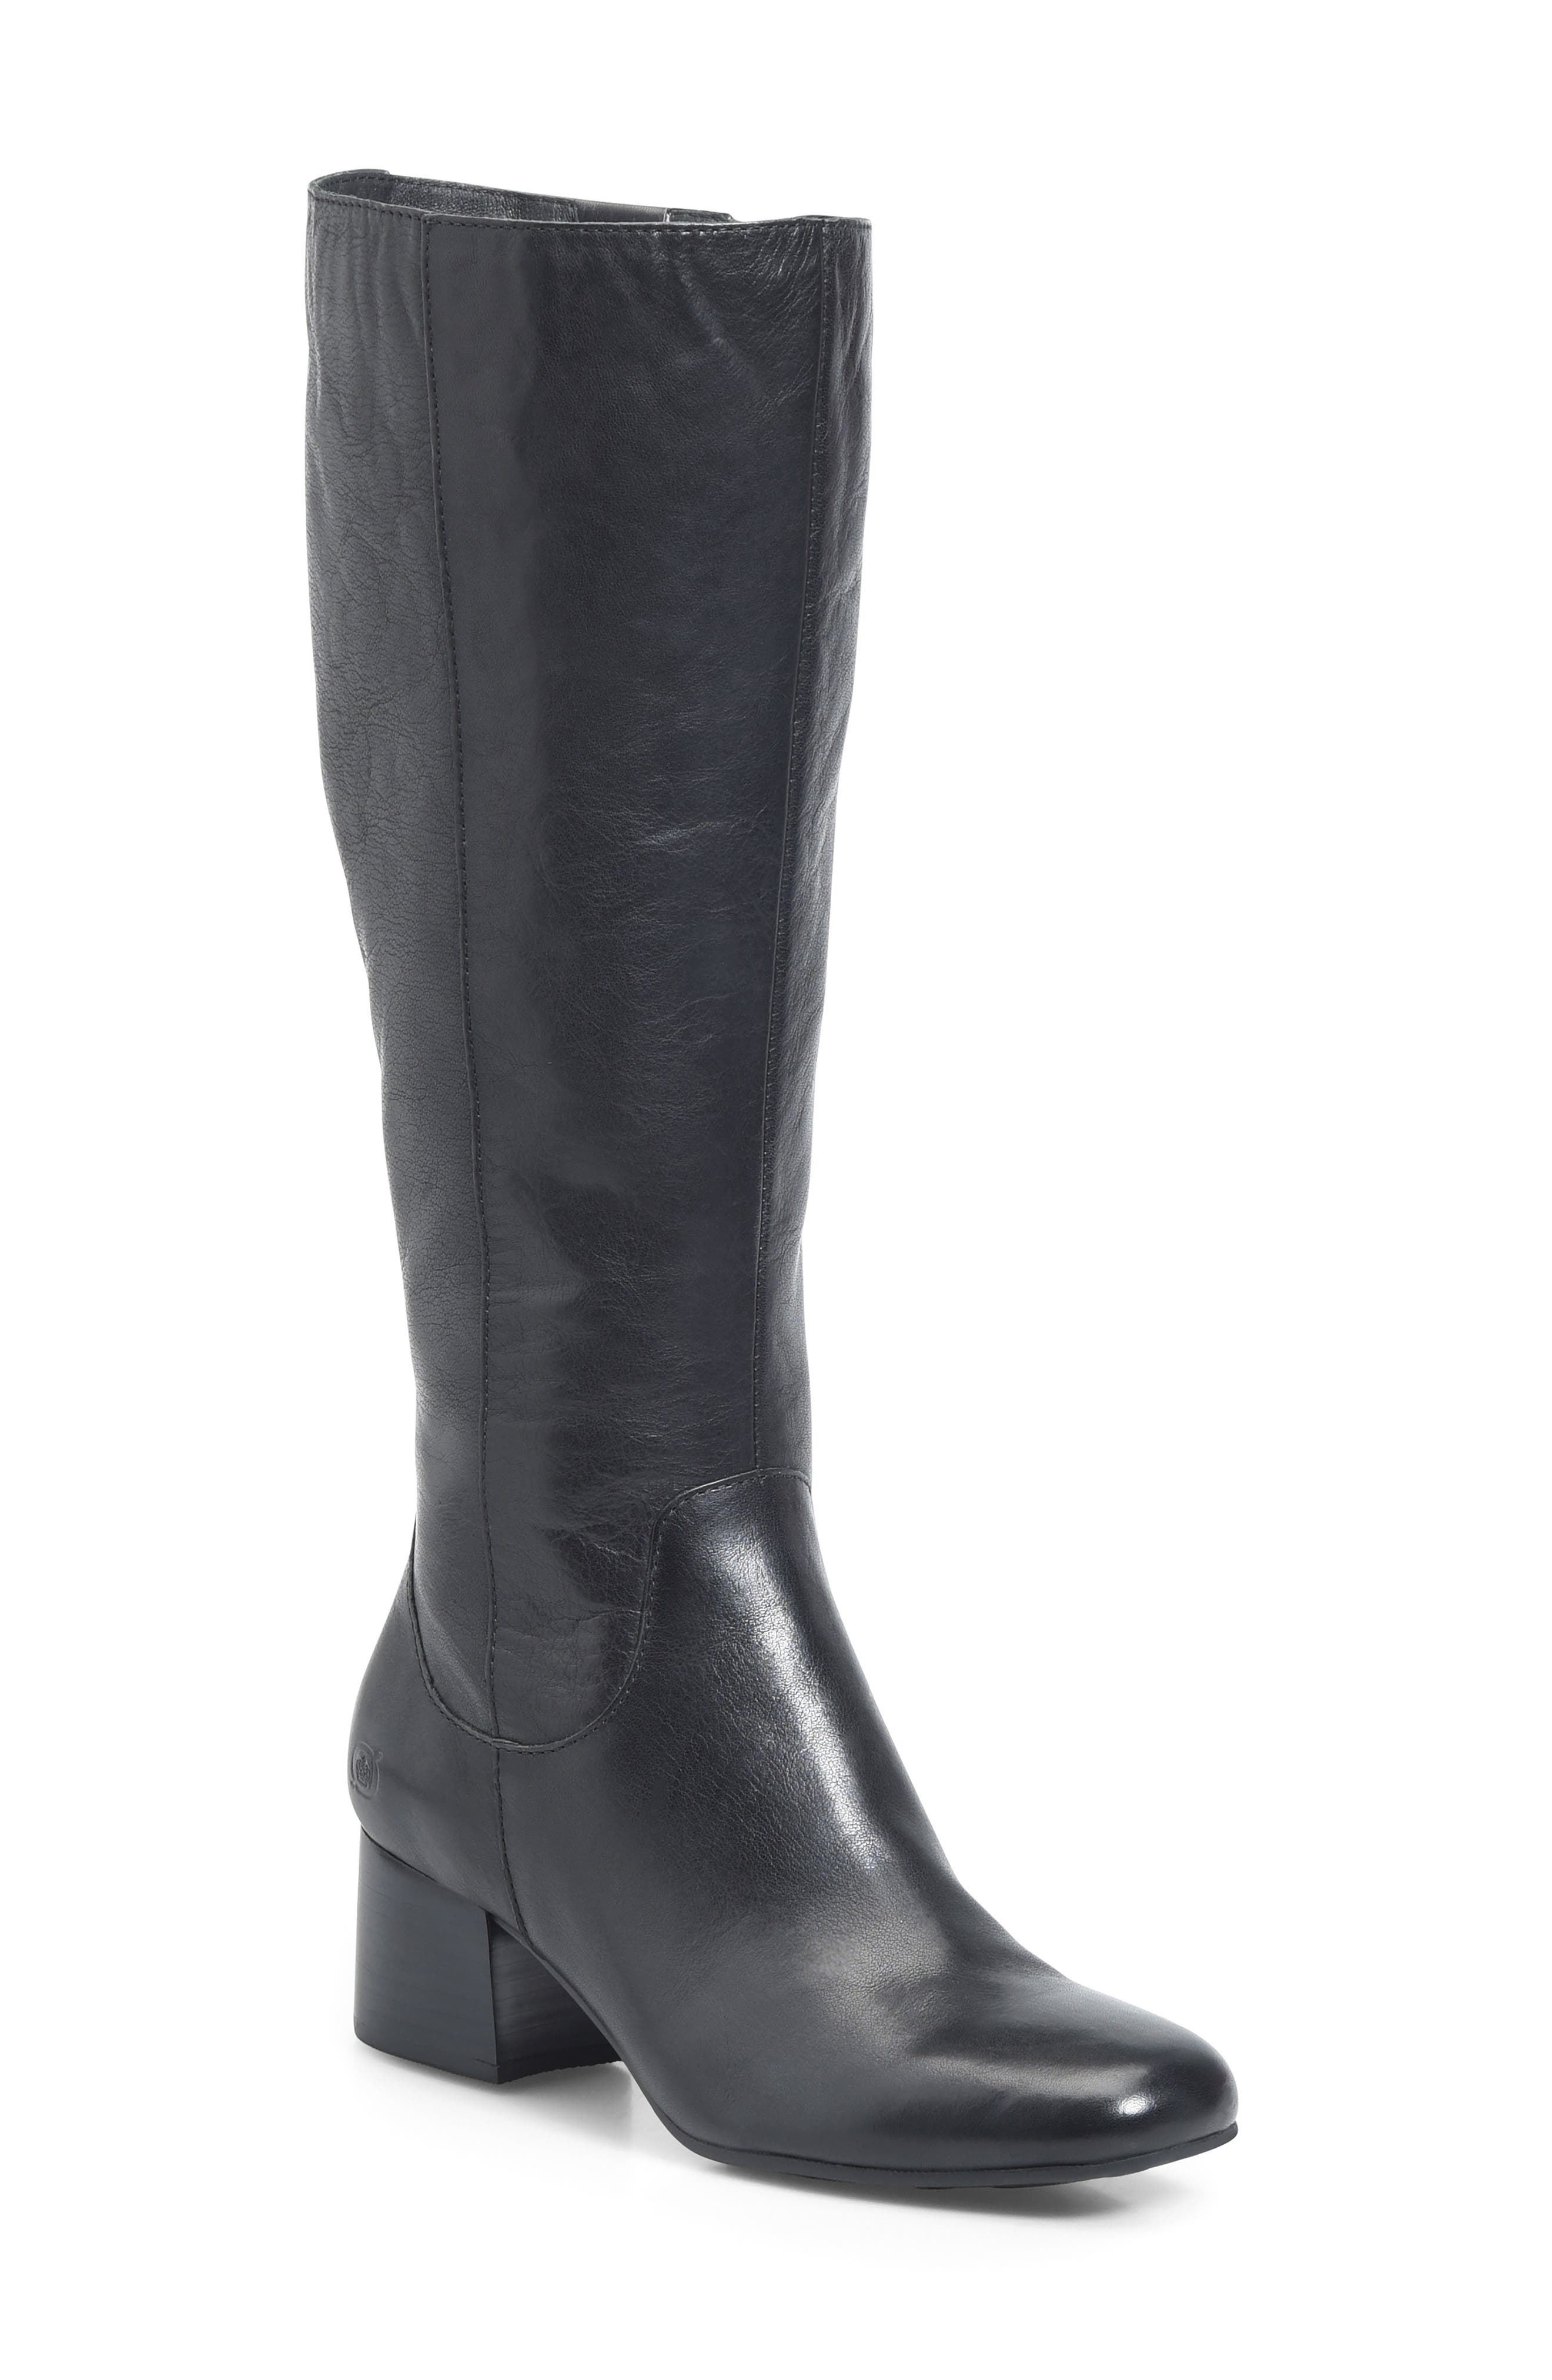 Avala Knee High Boot,                         Main,                         color, Black Leather